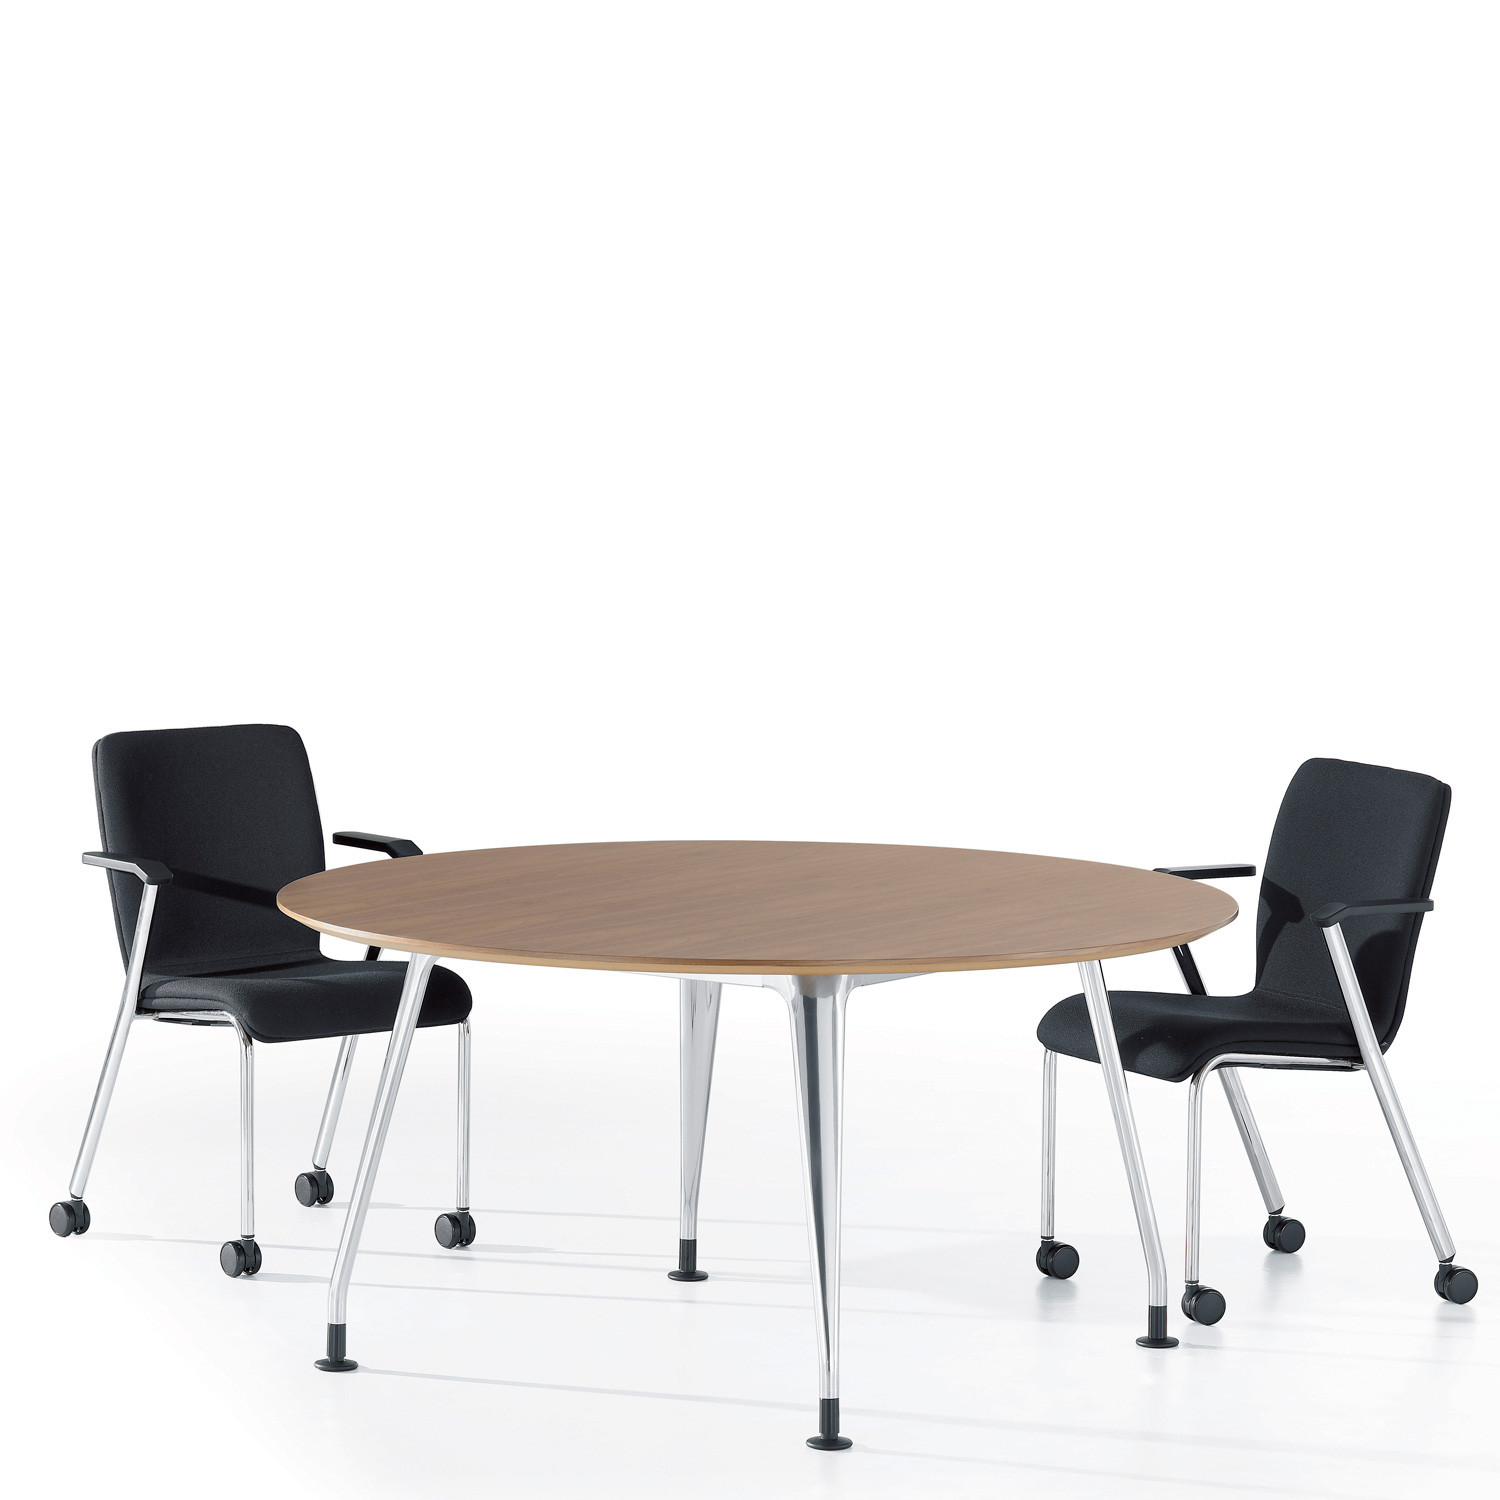 DNA Round Meeting Table